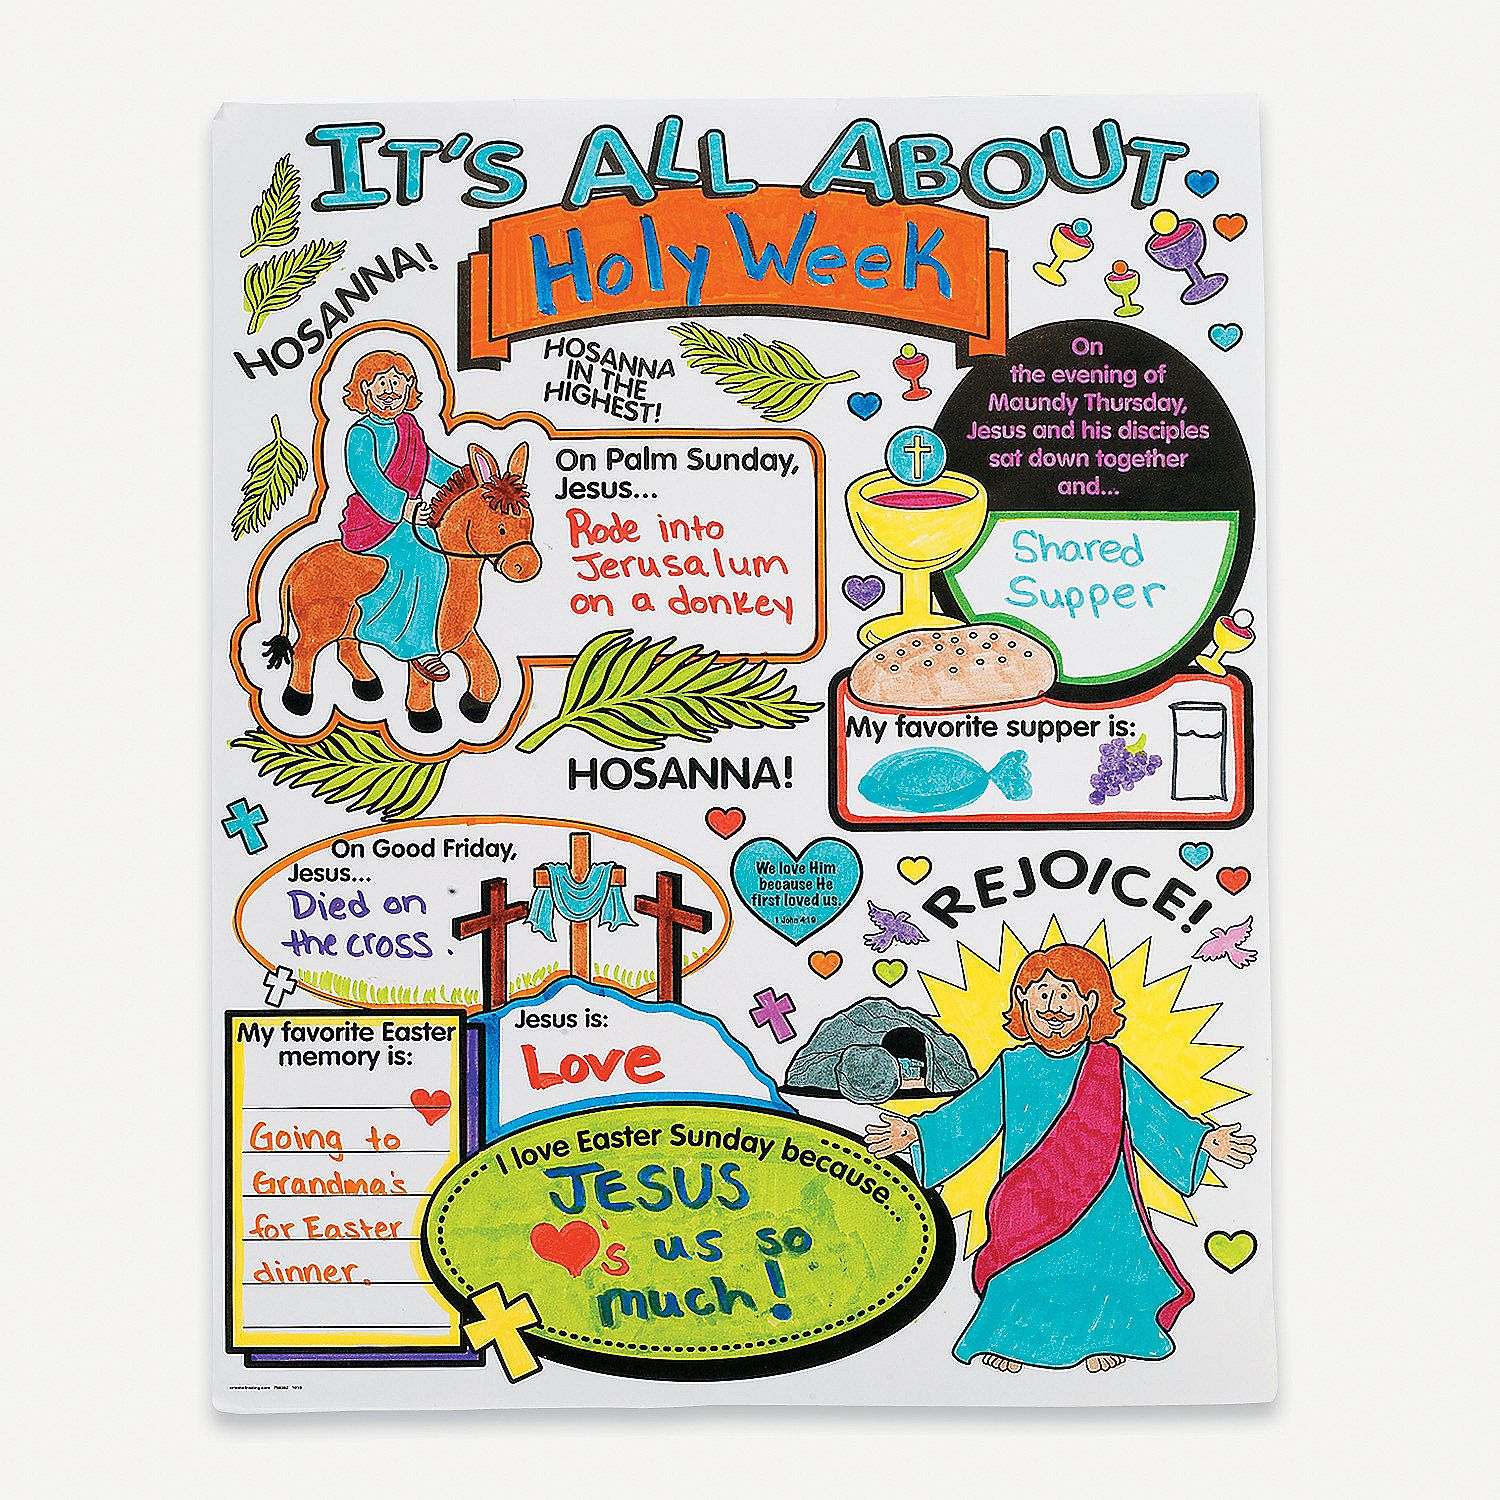 Color Your Own All About Holy Week Posters